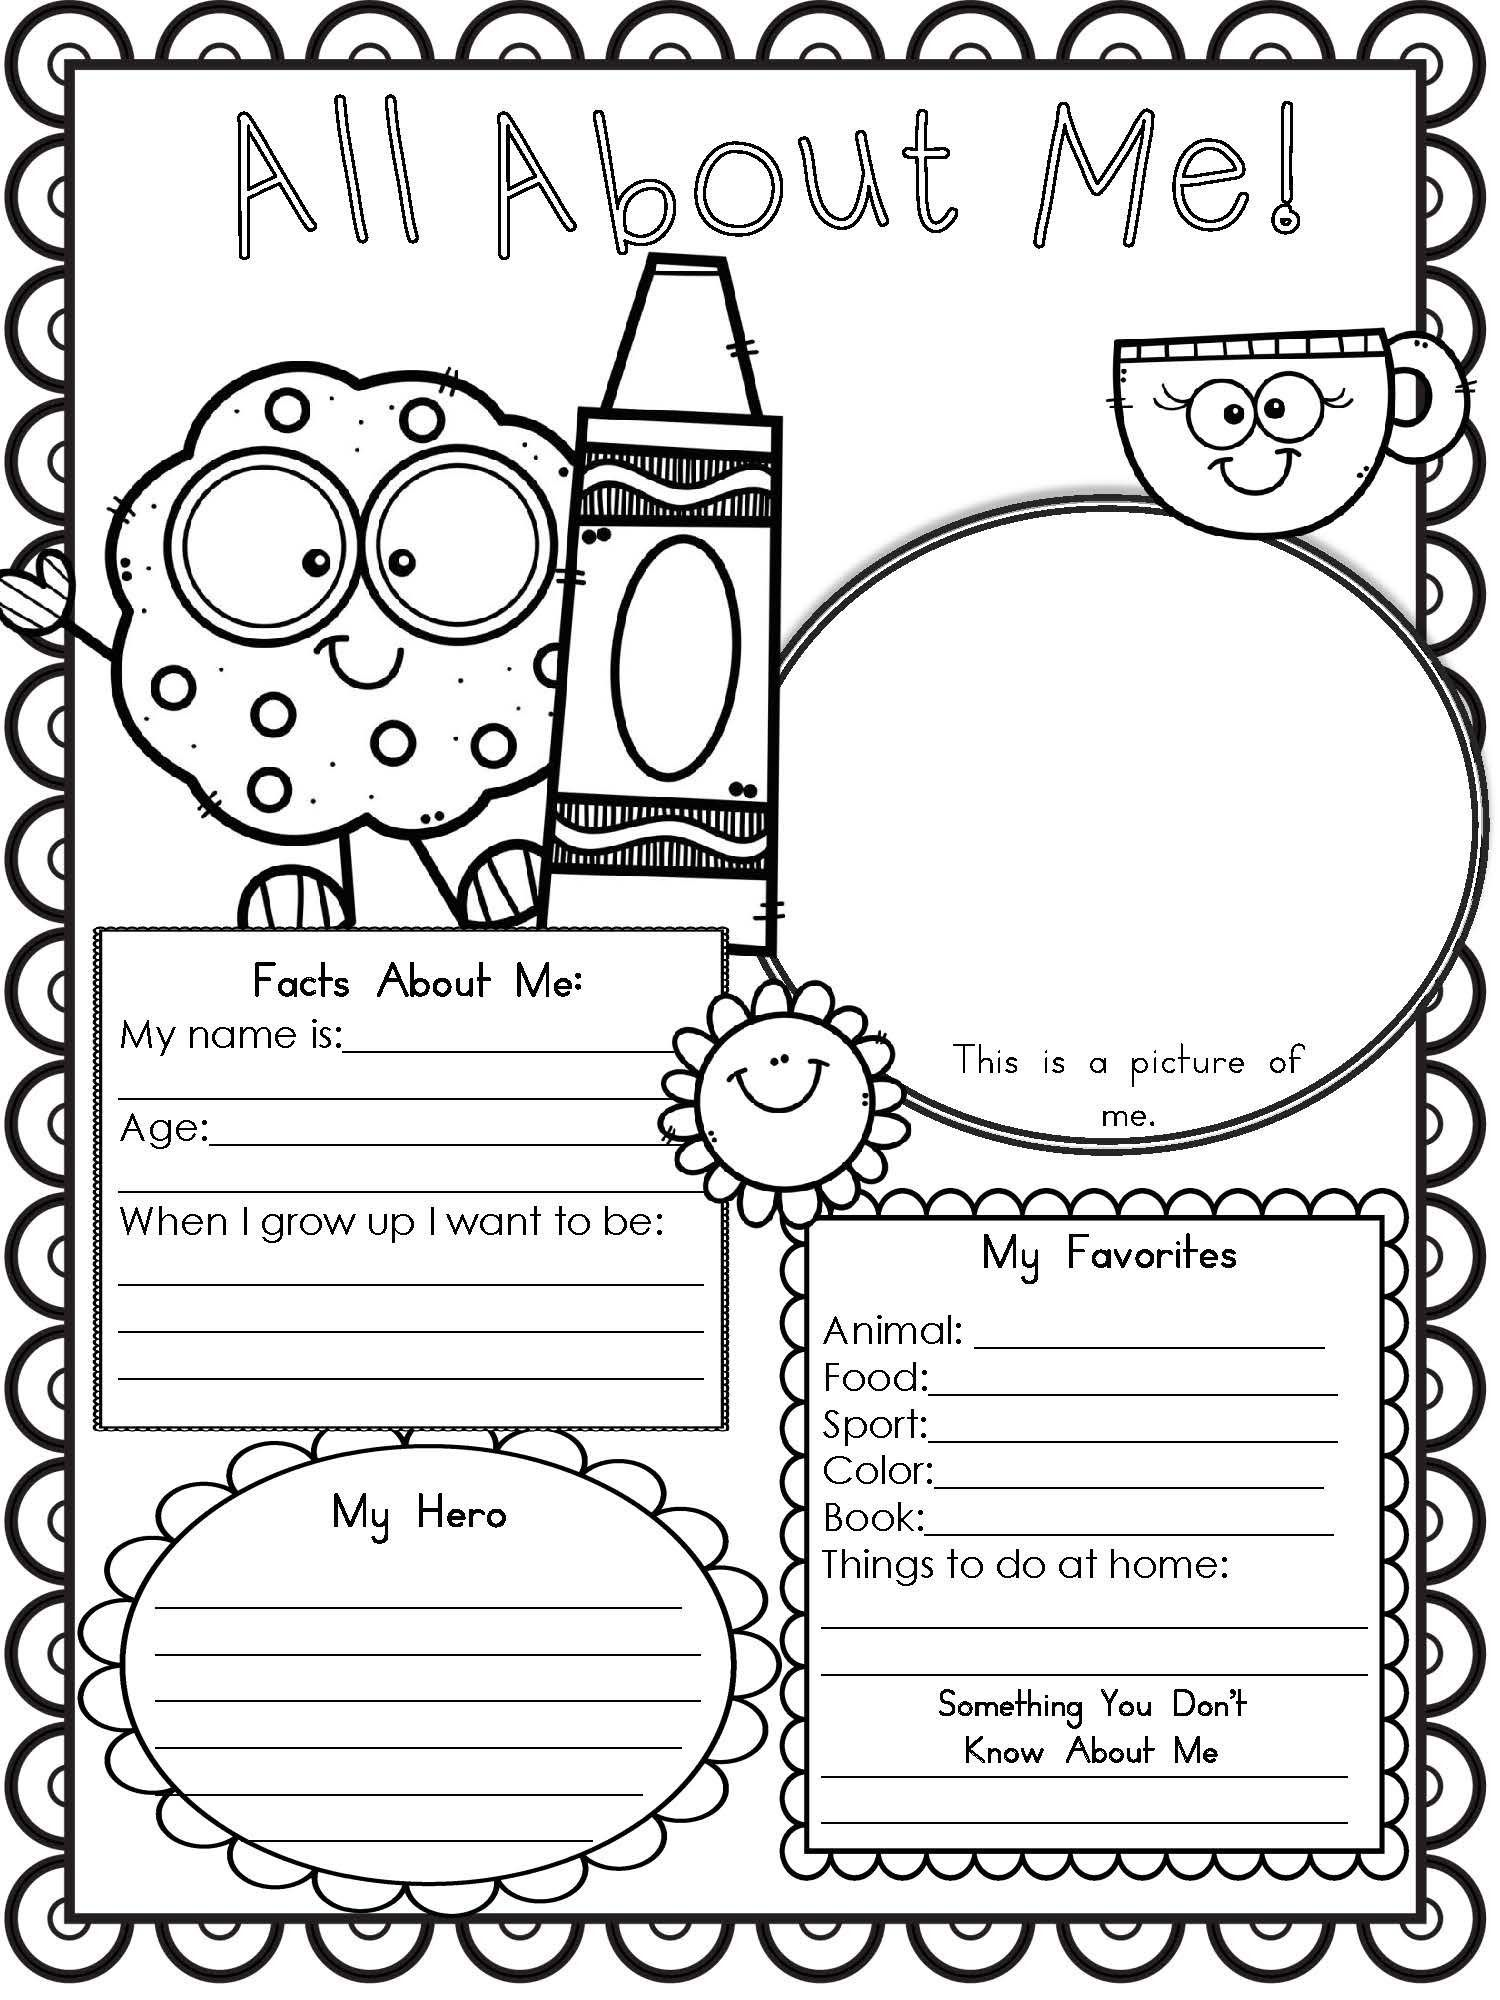 Social Studies Worksheets for Kindergarten in 2020 | All ...